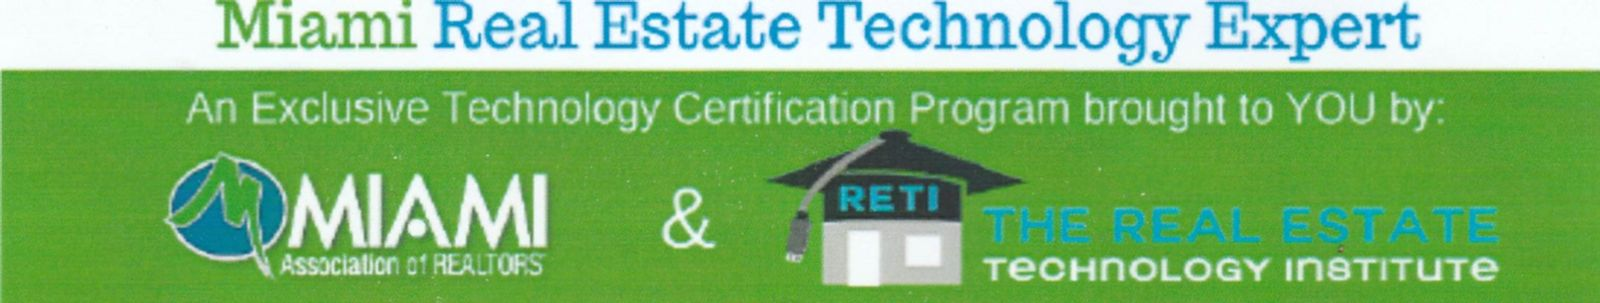 Miami Board of Realtors Technology Expert